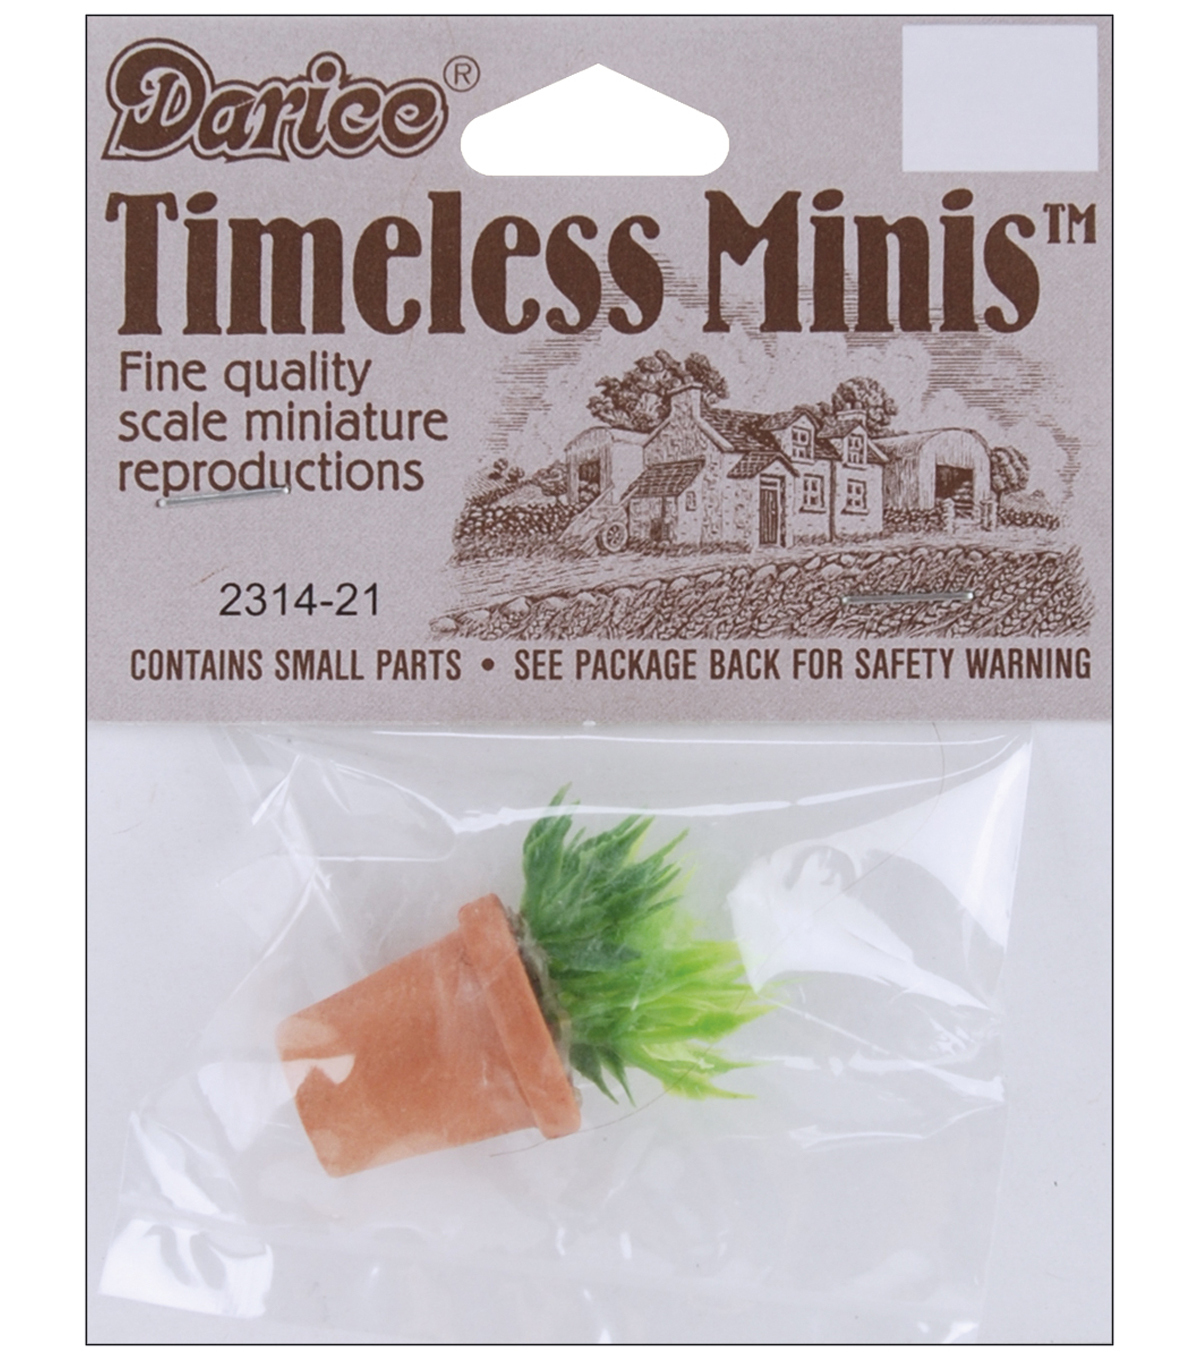 Darice Timeless Miniatures-House Plant